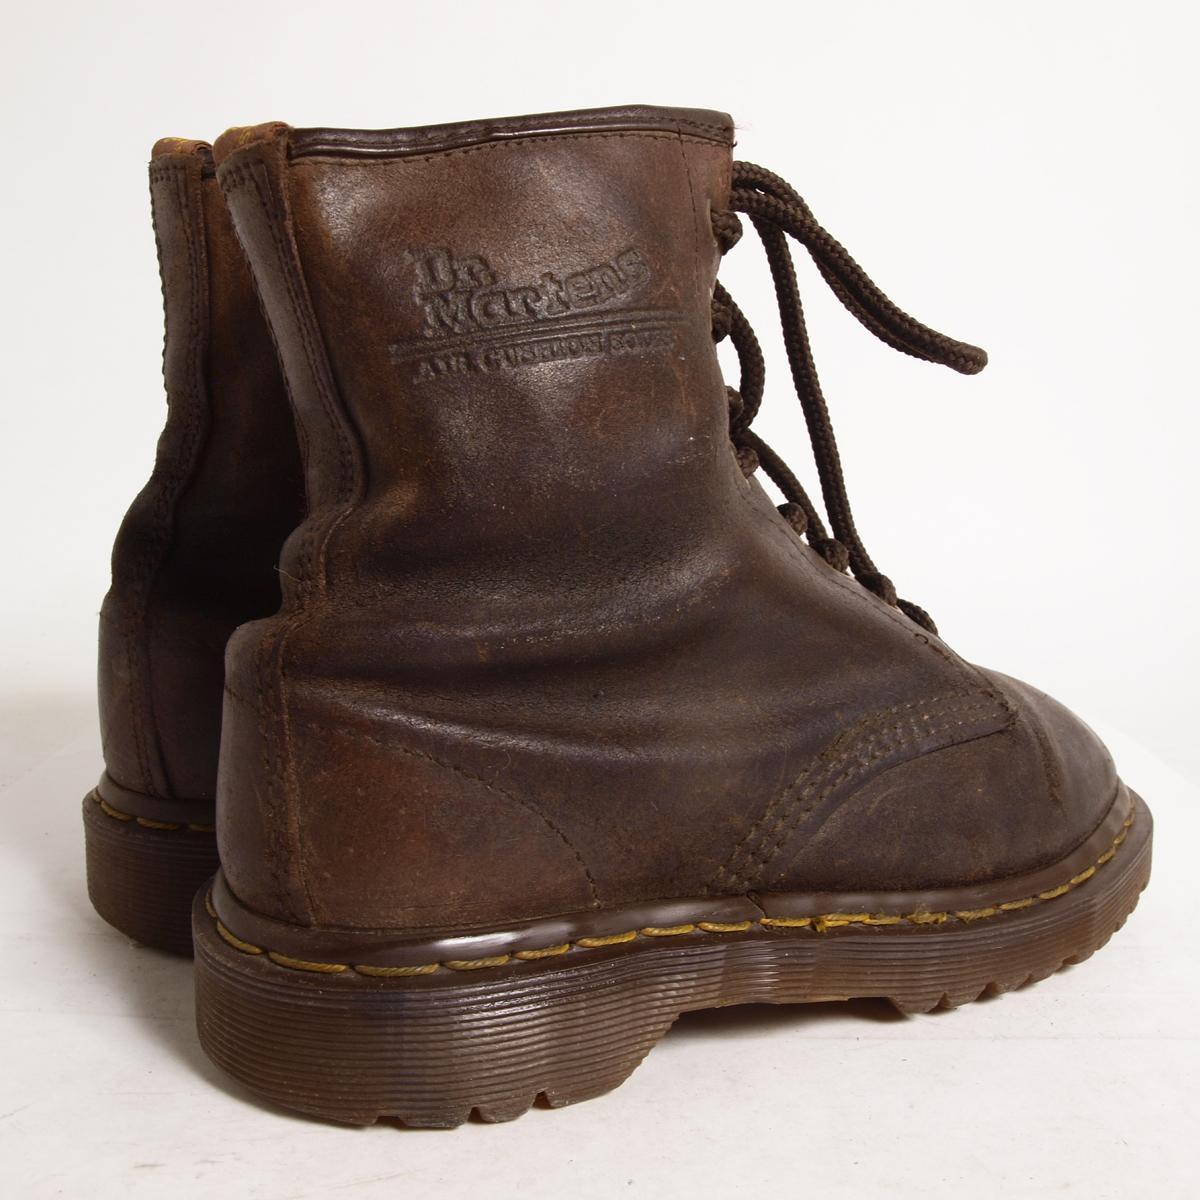 8 hall boots UK5 Lady's 23.5cm Dr.Martens /bol1461 made in the doctor Martin U.K.